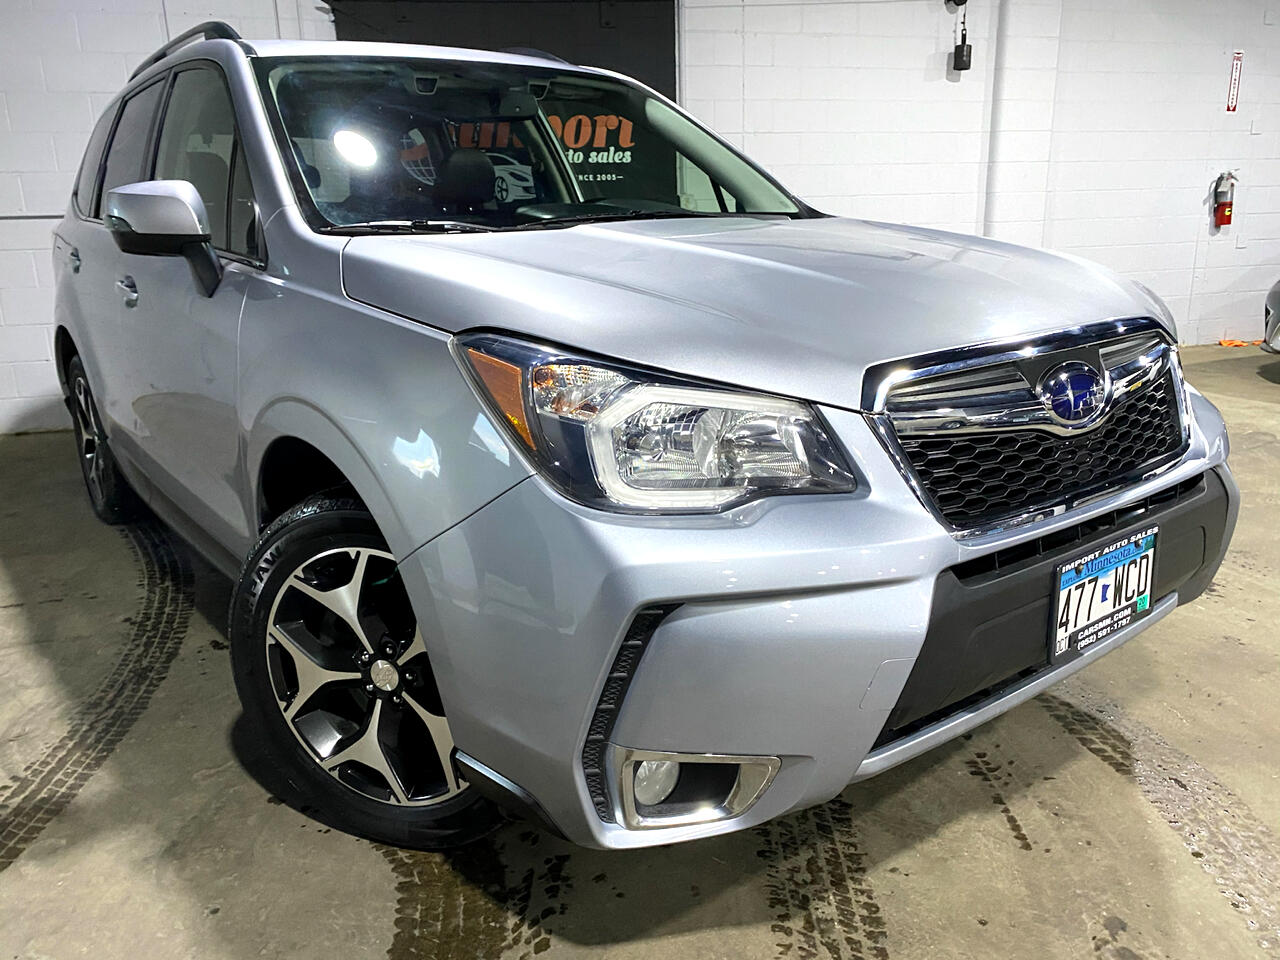 Subaru Forester 4dr Auto 2.0XT Touring 2014